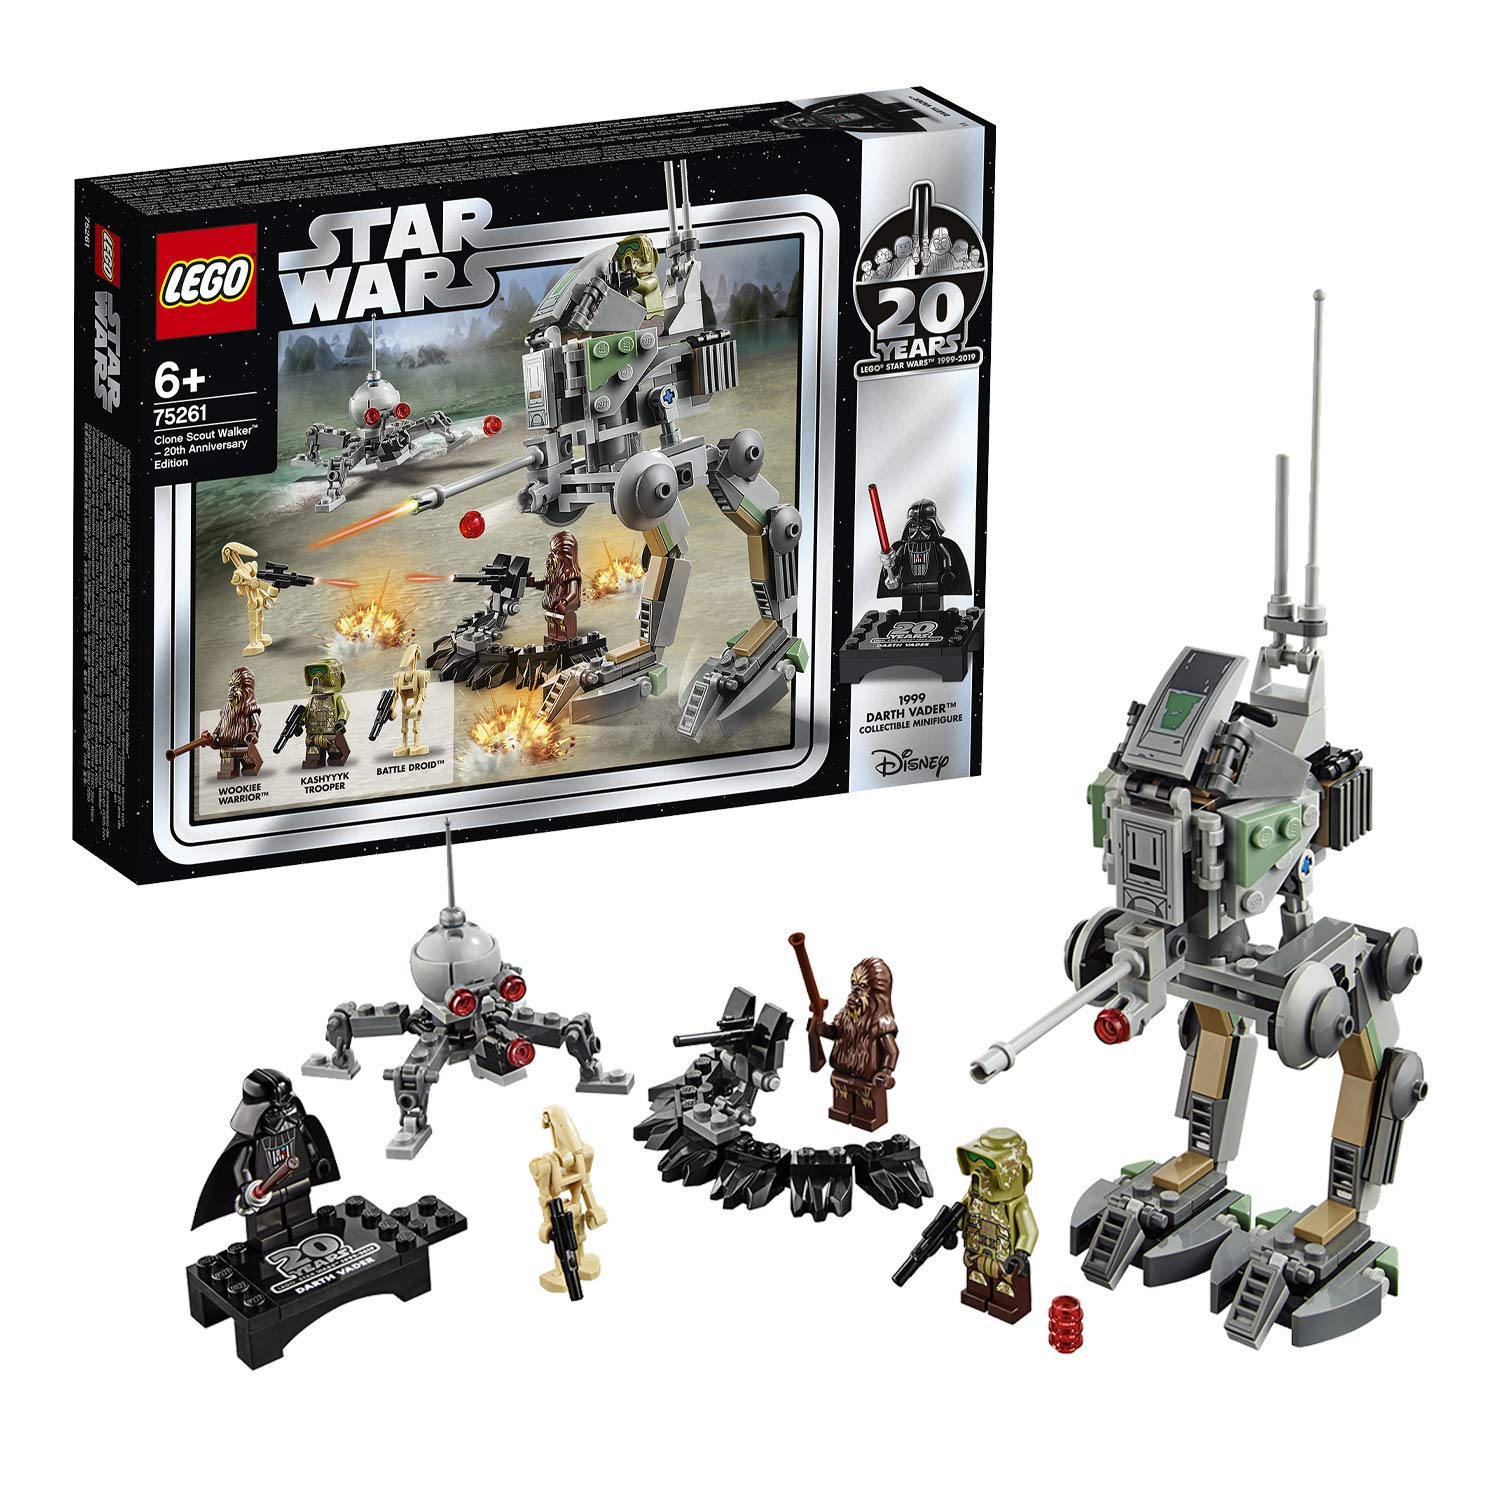 15 Of The Best Lego Star Wars Gift Ideas